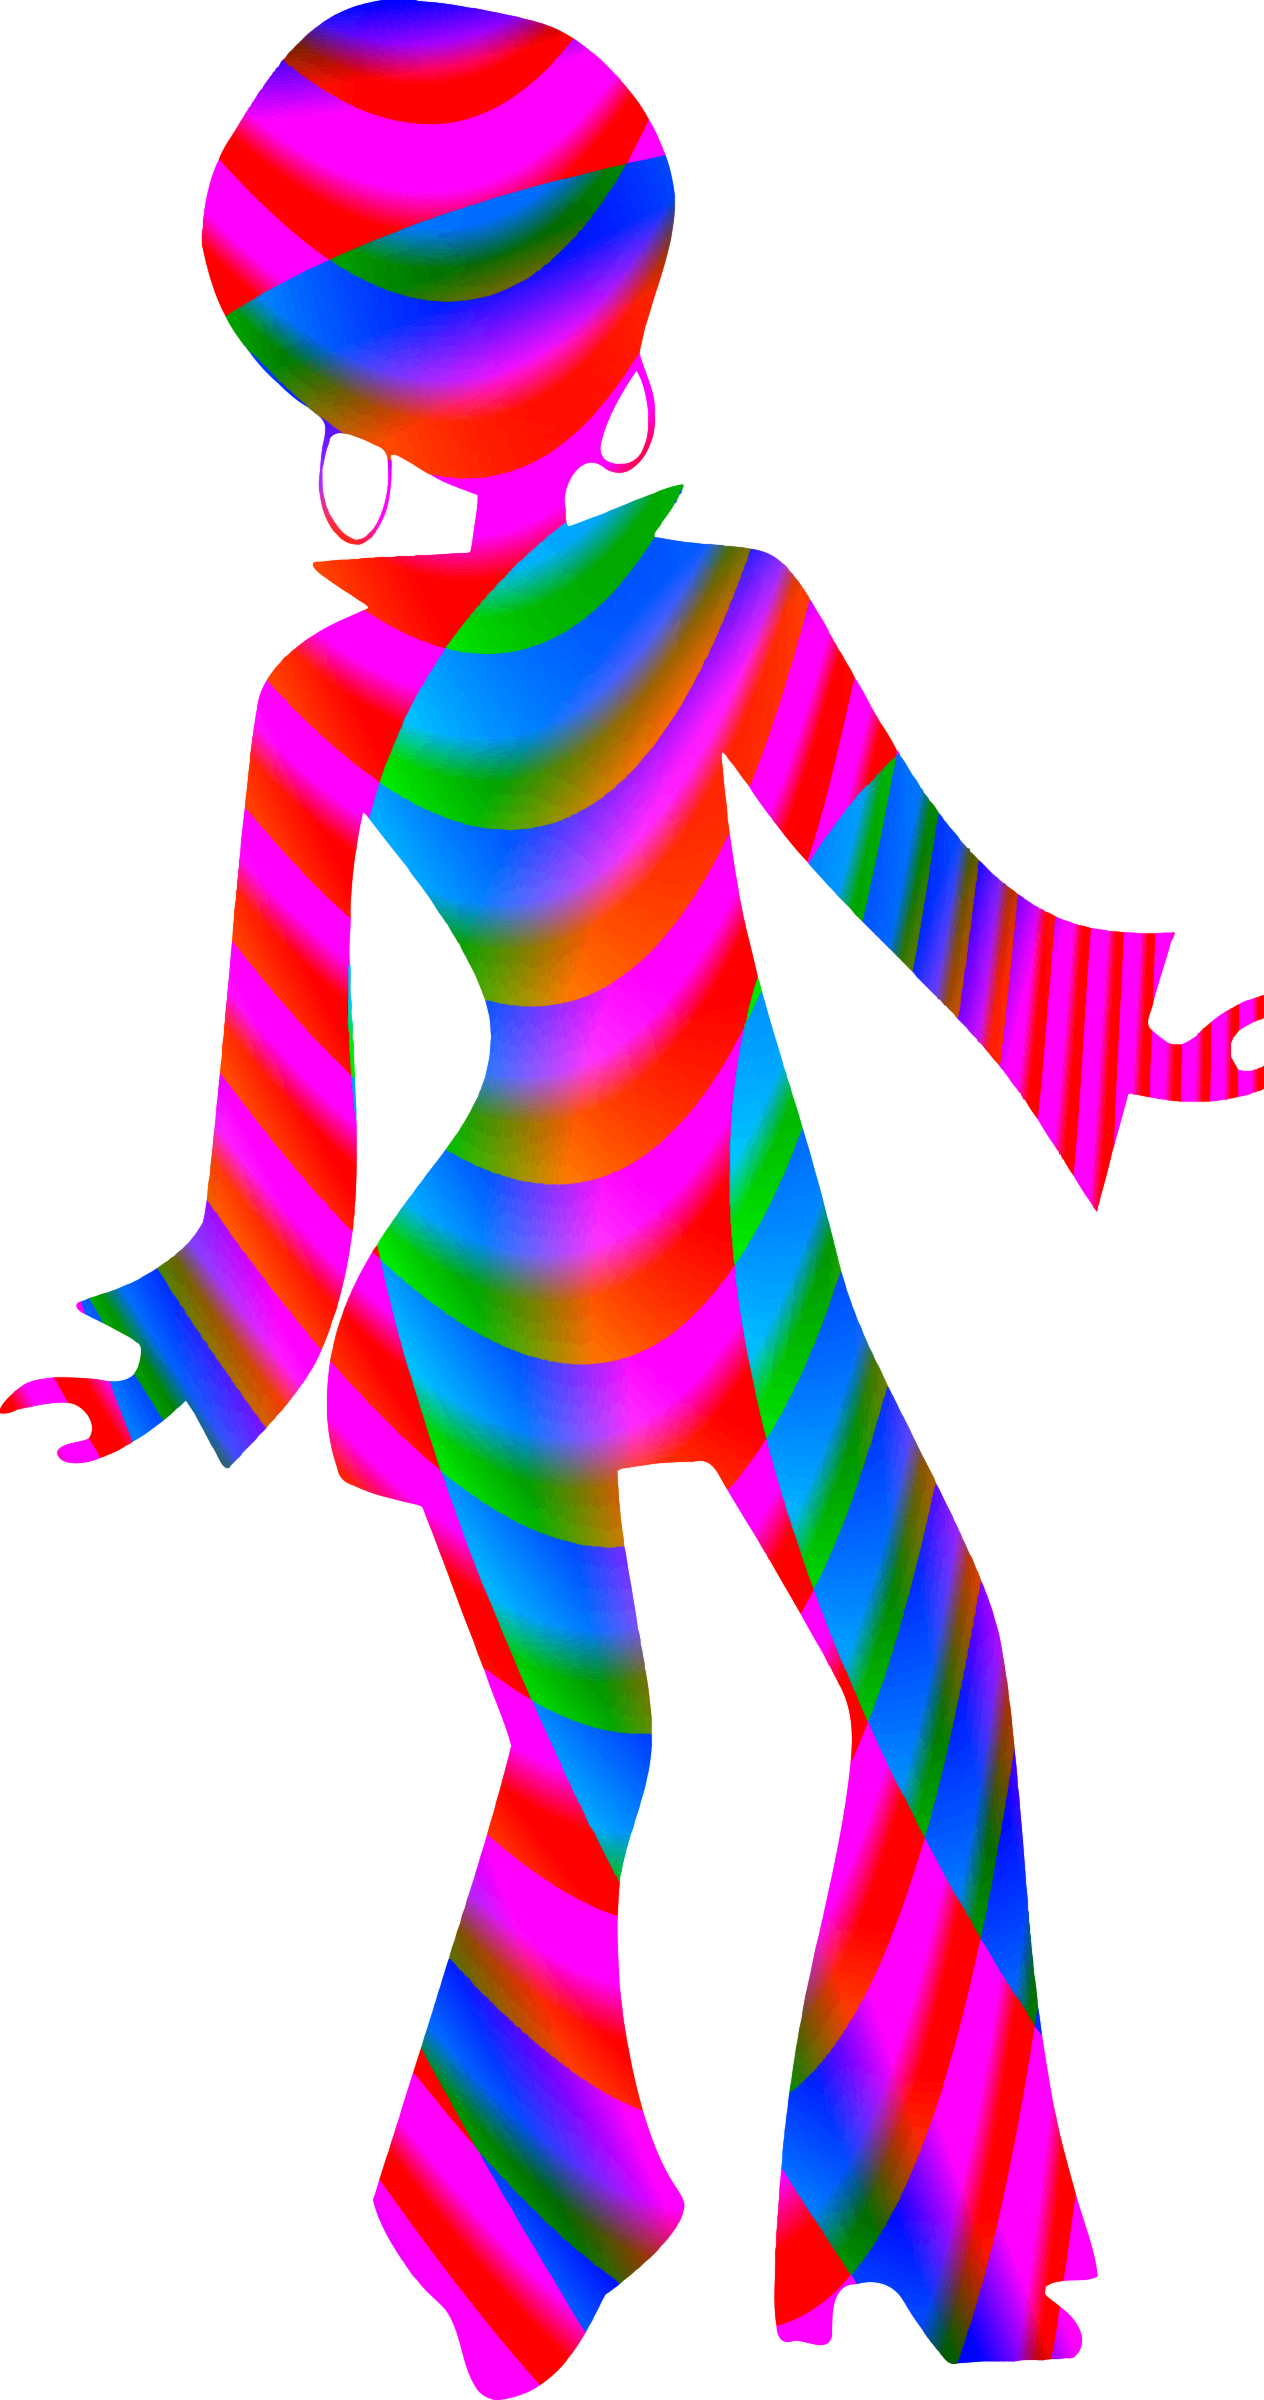 Colourful disco dancer 2 by Firkin